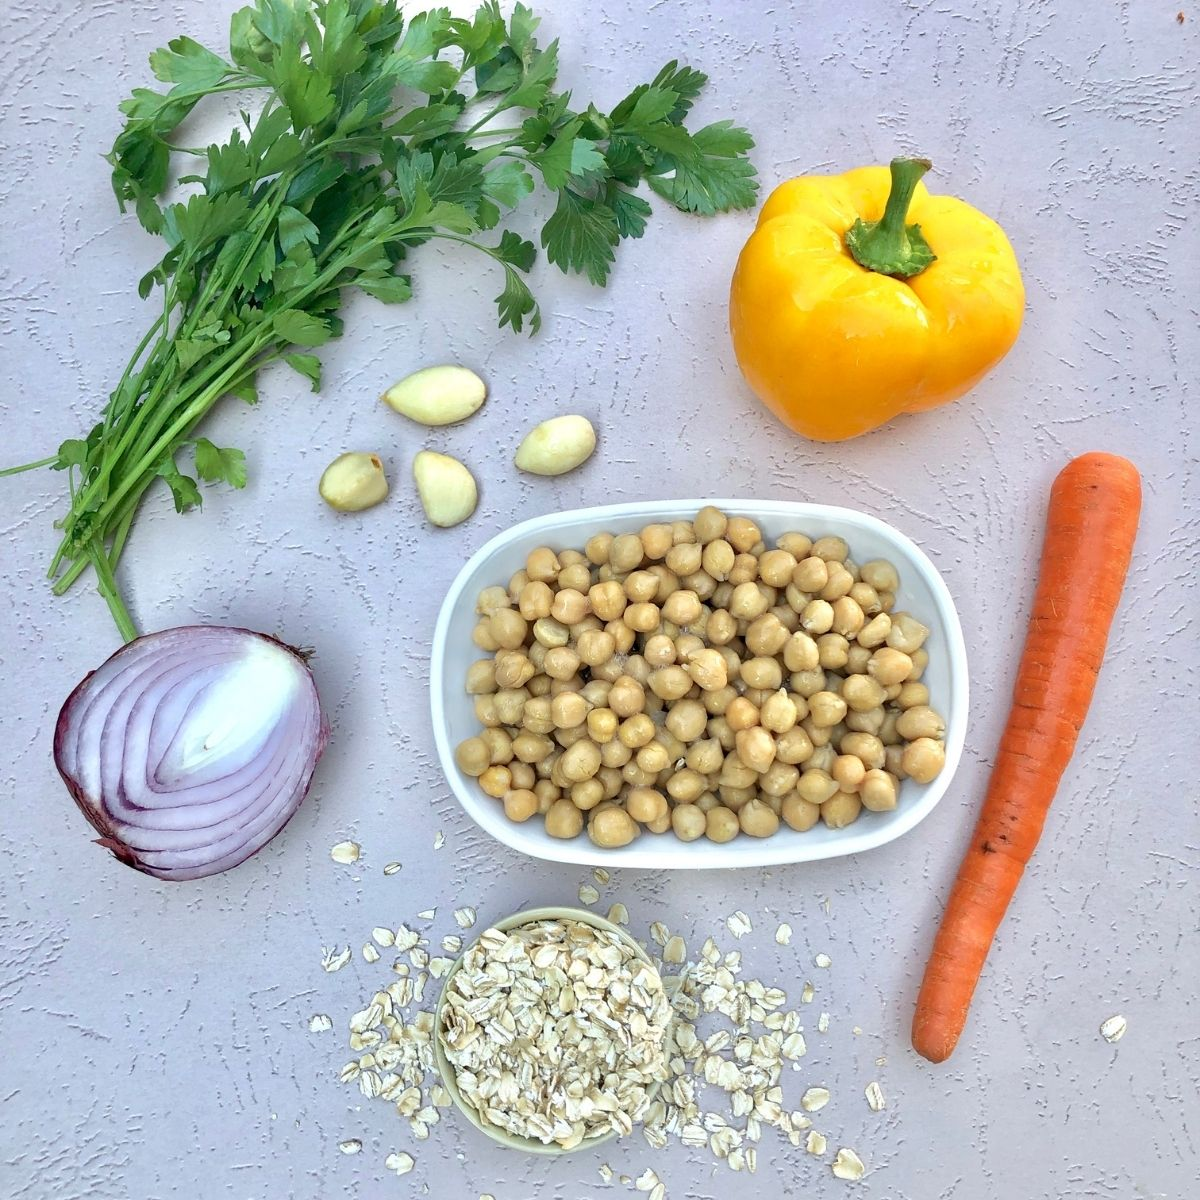 bunch of fresh parsley, yellow bell pepper, carrot, 1/2 red onion, 4 cloves garlic, and a small cup of oats on a pink backdrop